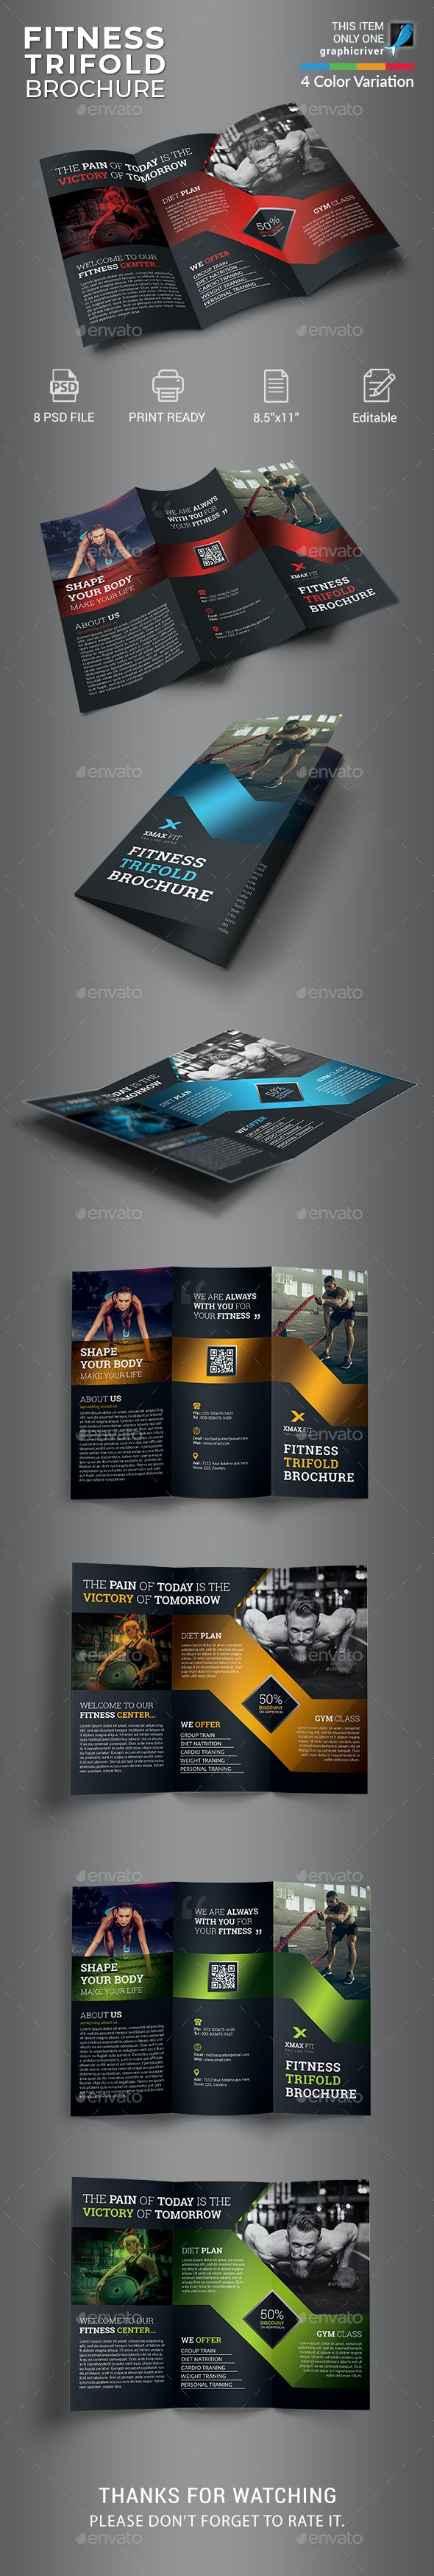 Fitness Trifold Brochure - Informational Brochures